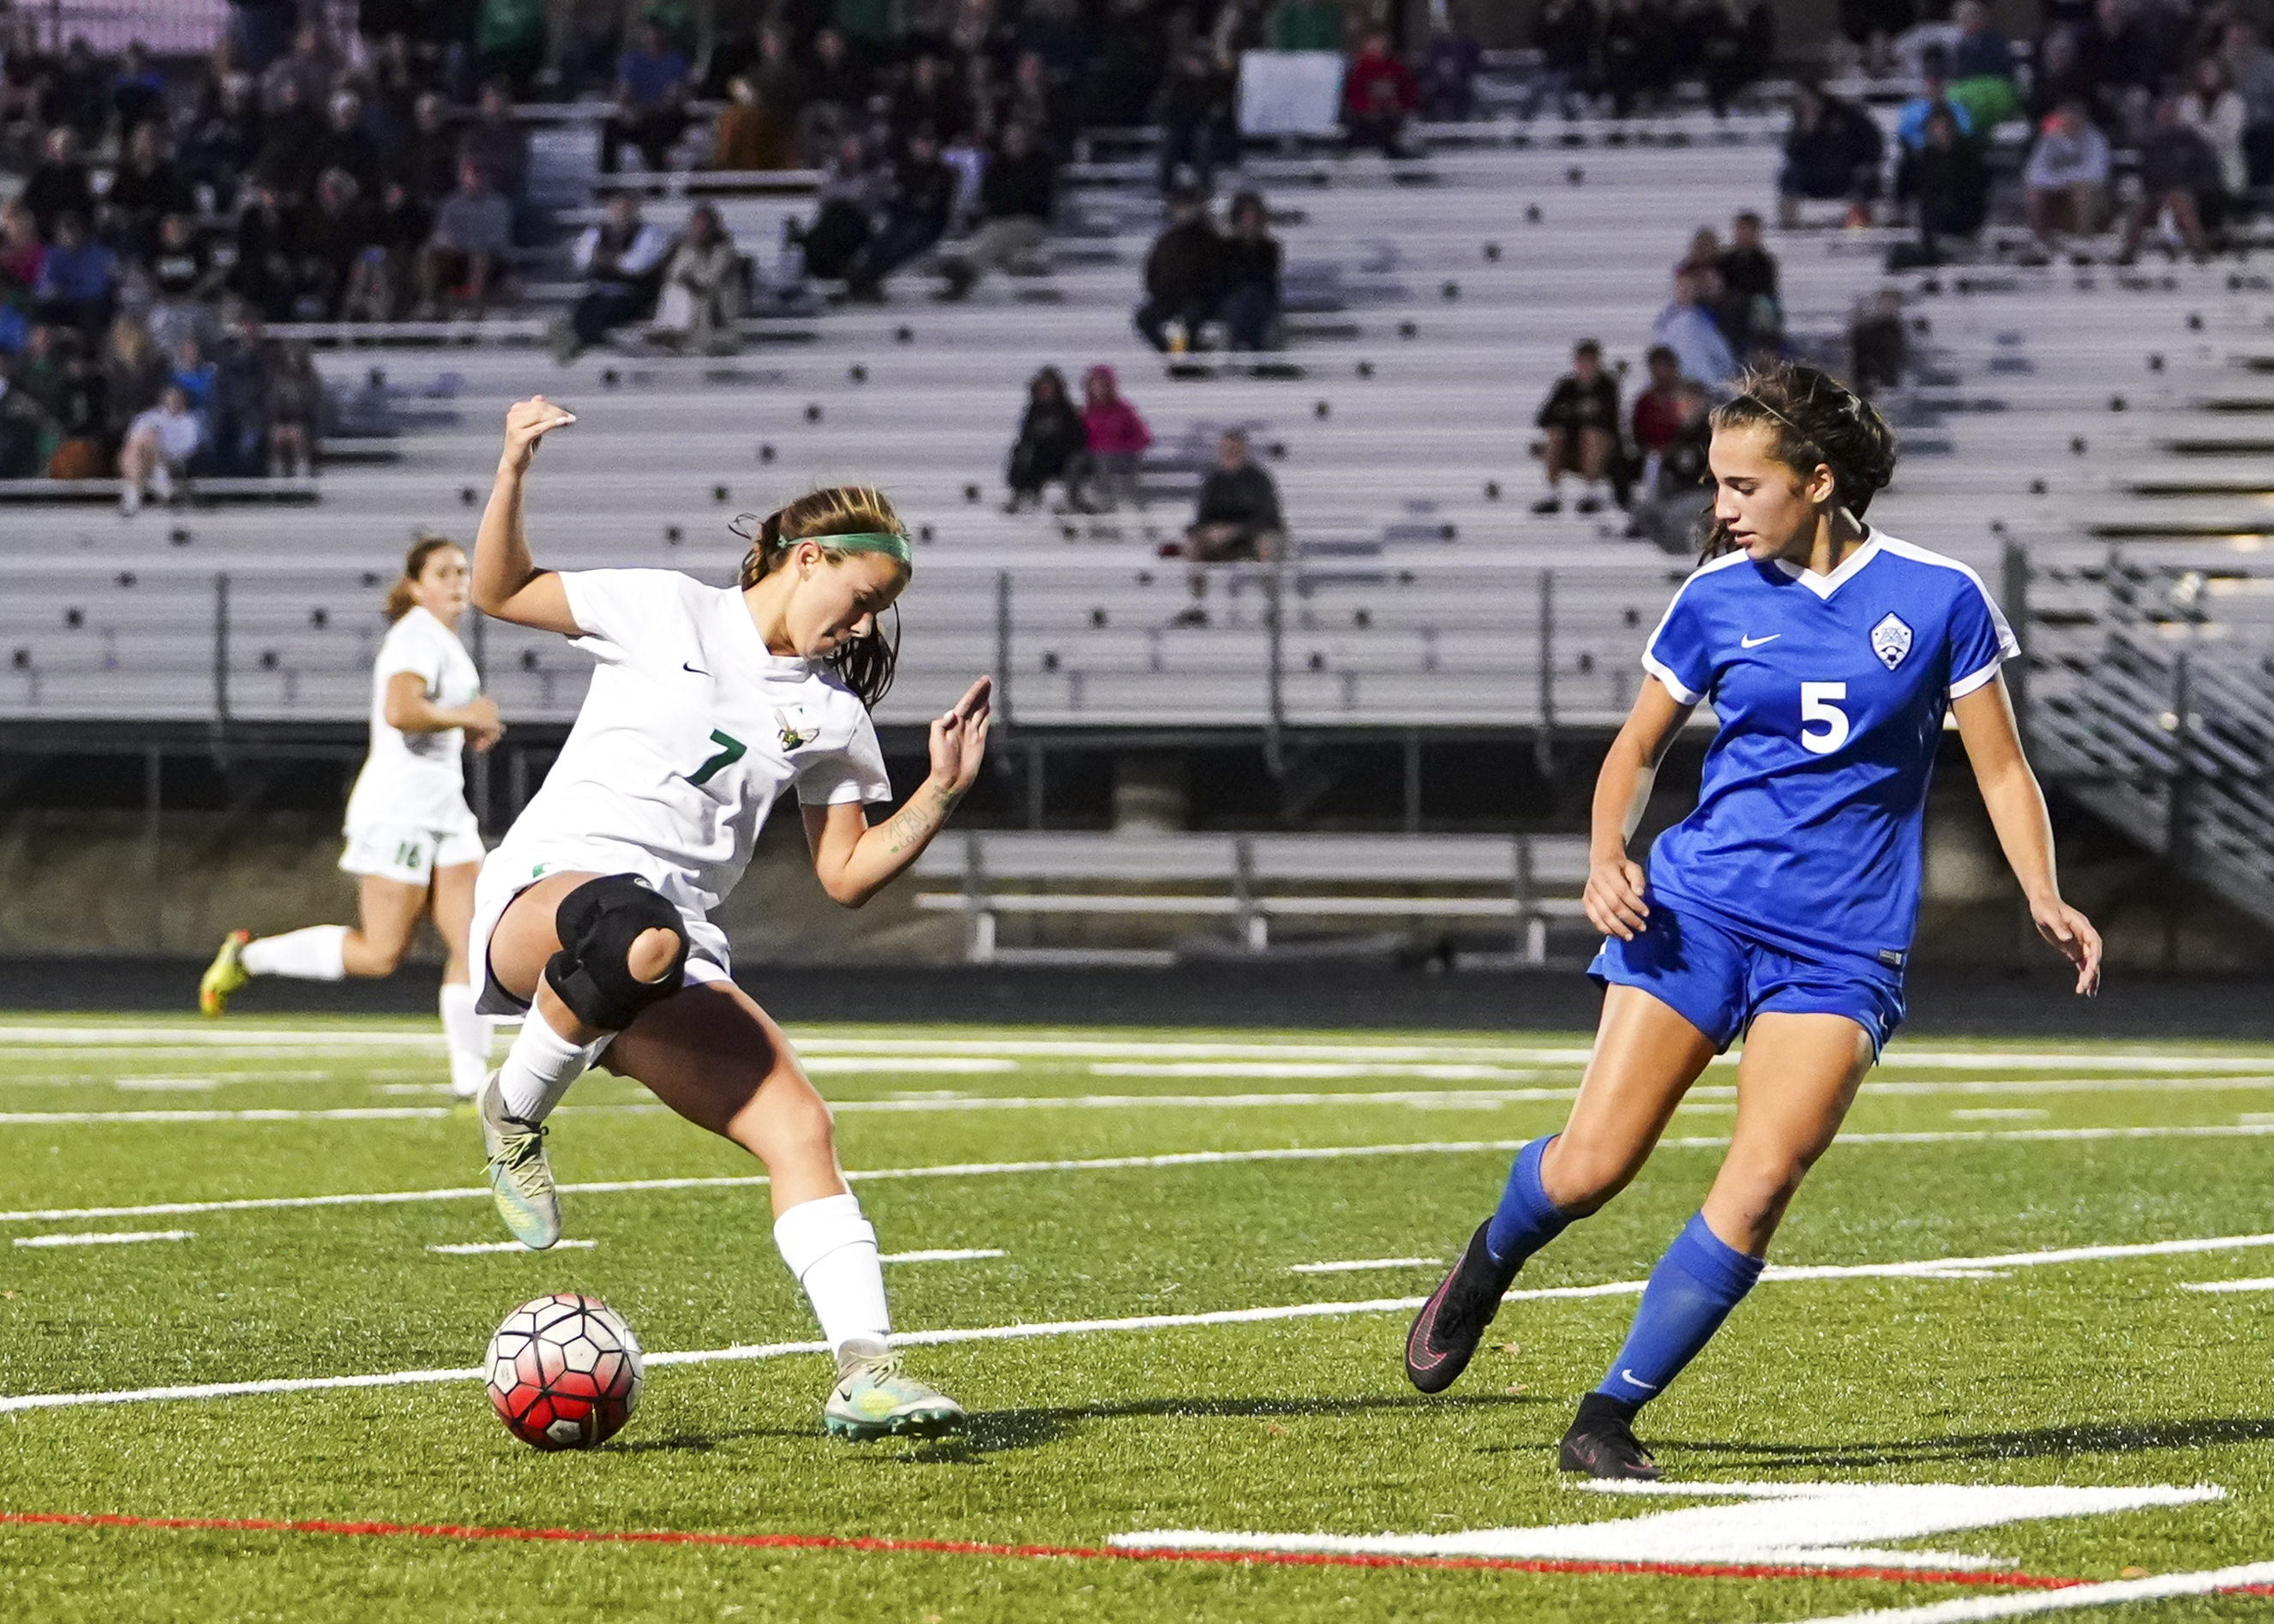 Edina freshman Haley Reeck (7) attacks goal on Minnetonka defender Kayla Mahabadi (5) in the first half. Reeck would later score the game winning goal in double overtime for a 1-0 victory over Minnetonka at Shakopee West Junior High School.